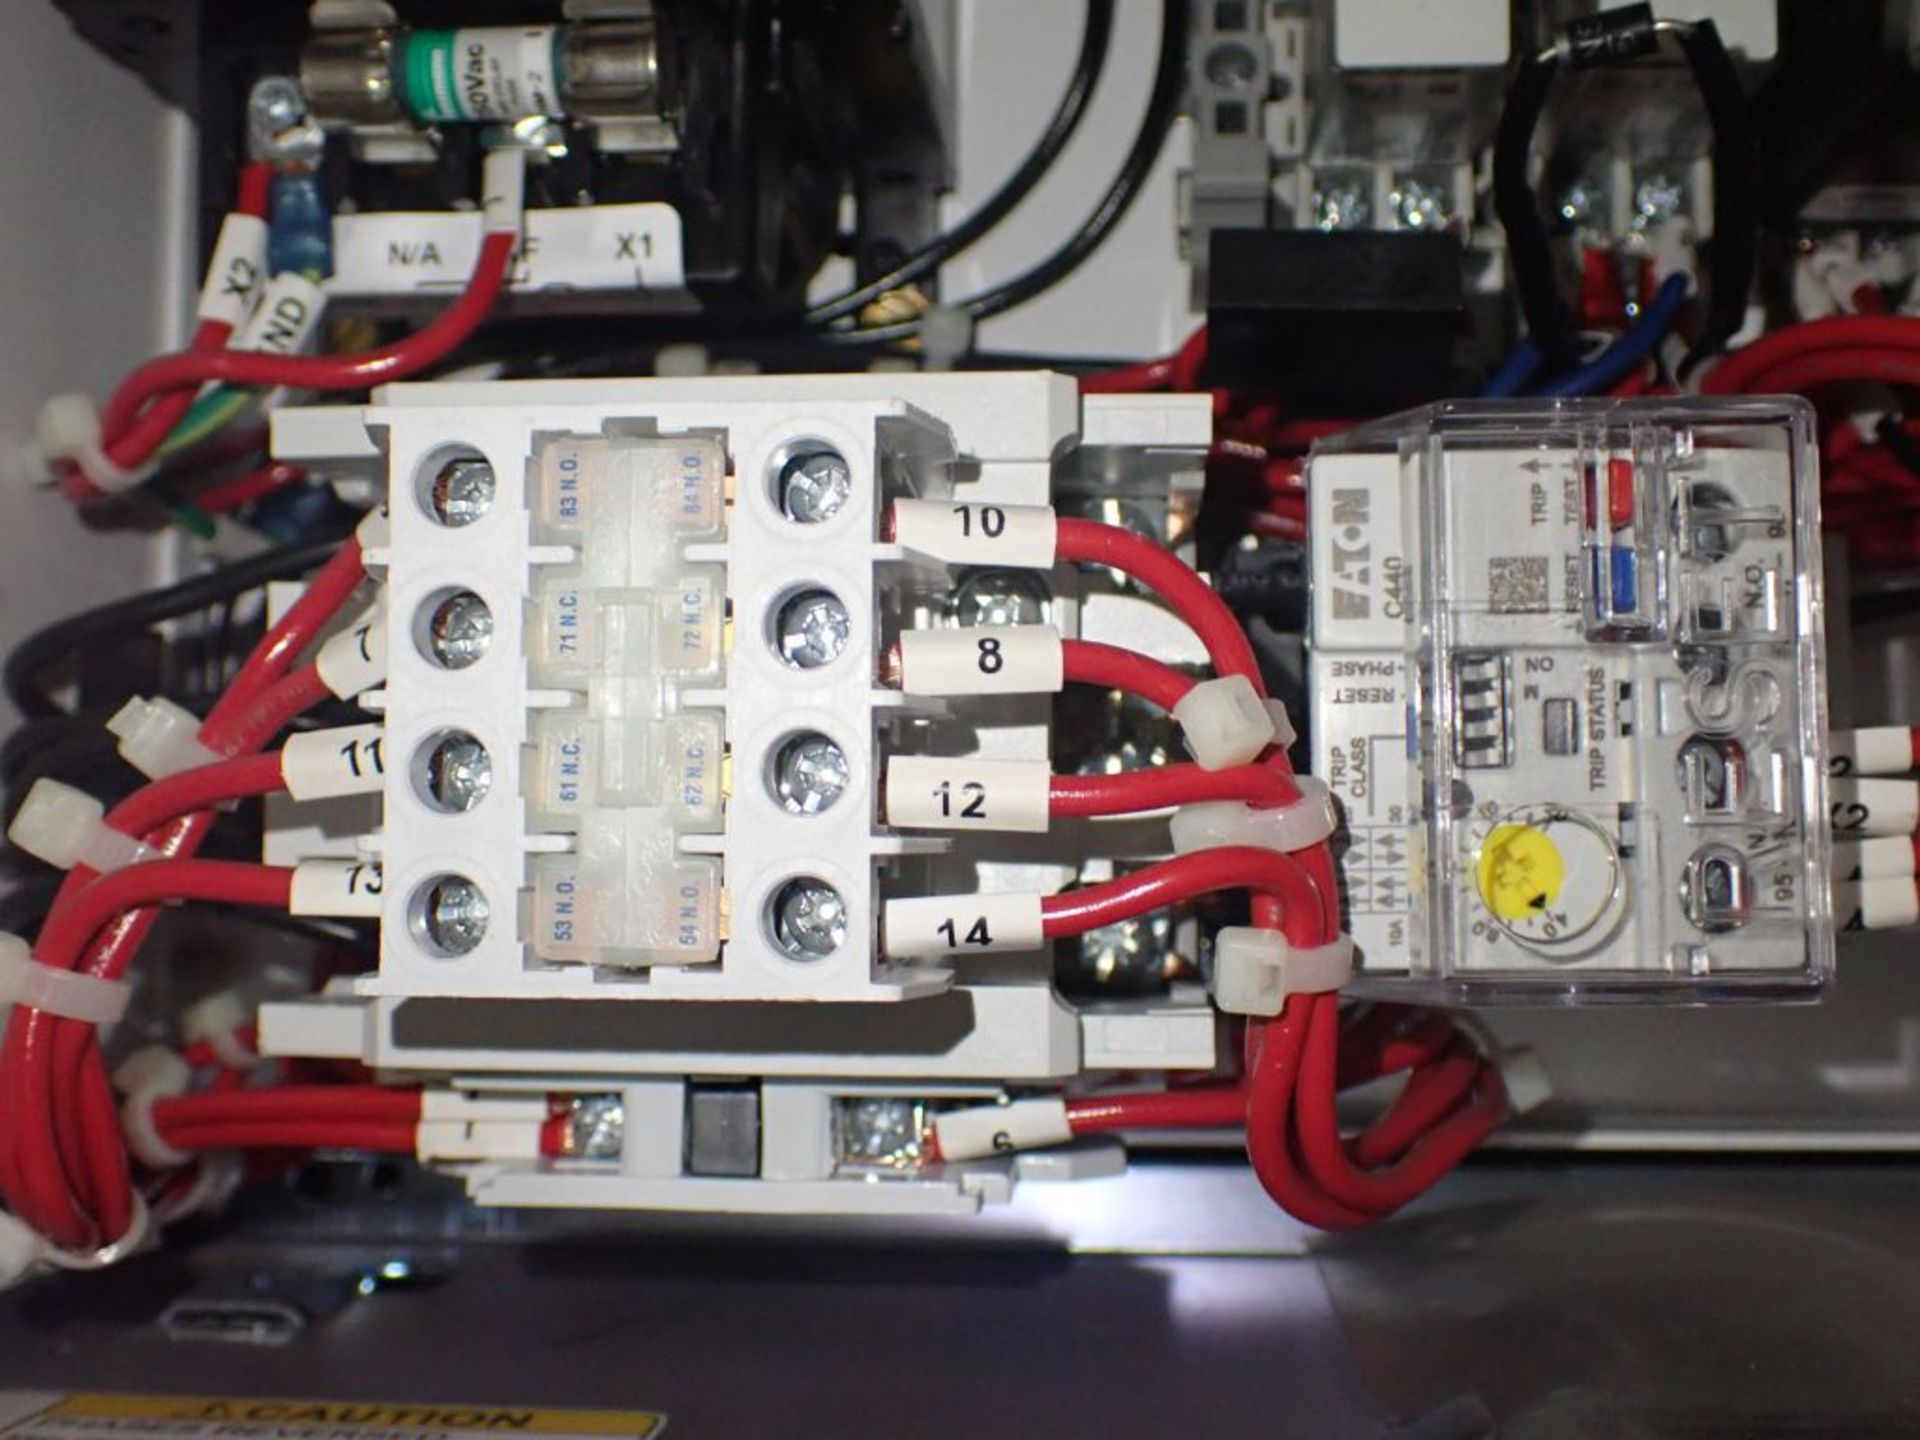 Eaton Freedom 2100 Series Motor Control Center | (2) F206-15A-10HP; (1) FDRB-250A; (1) FDRB-400A; ( - Image 78 of 104